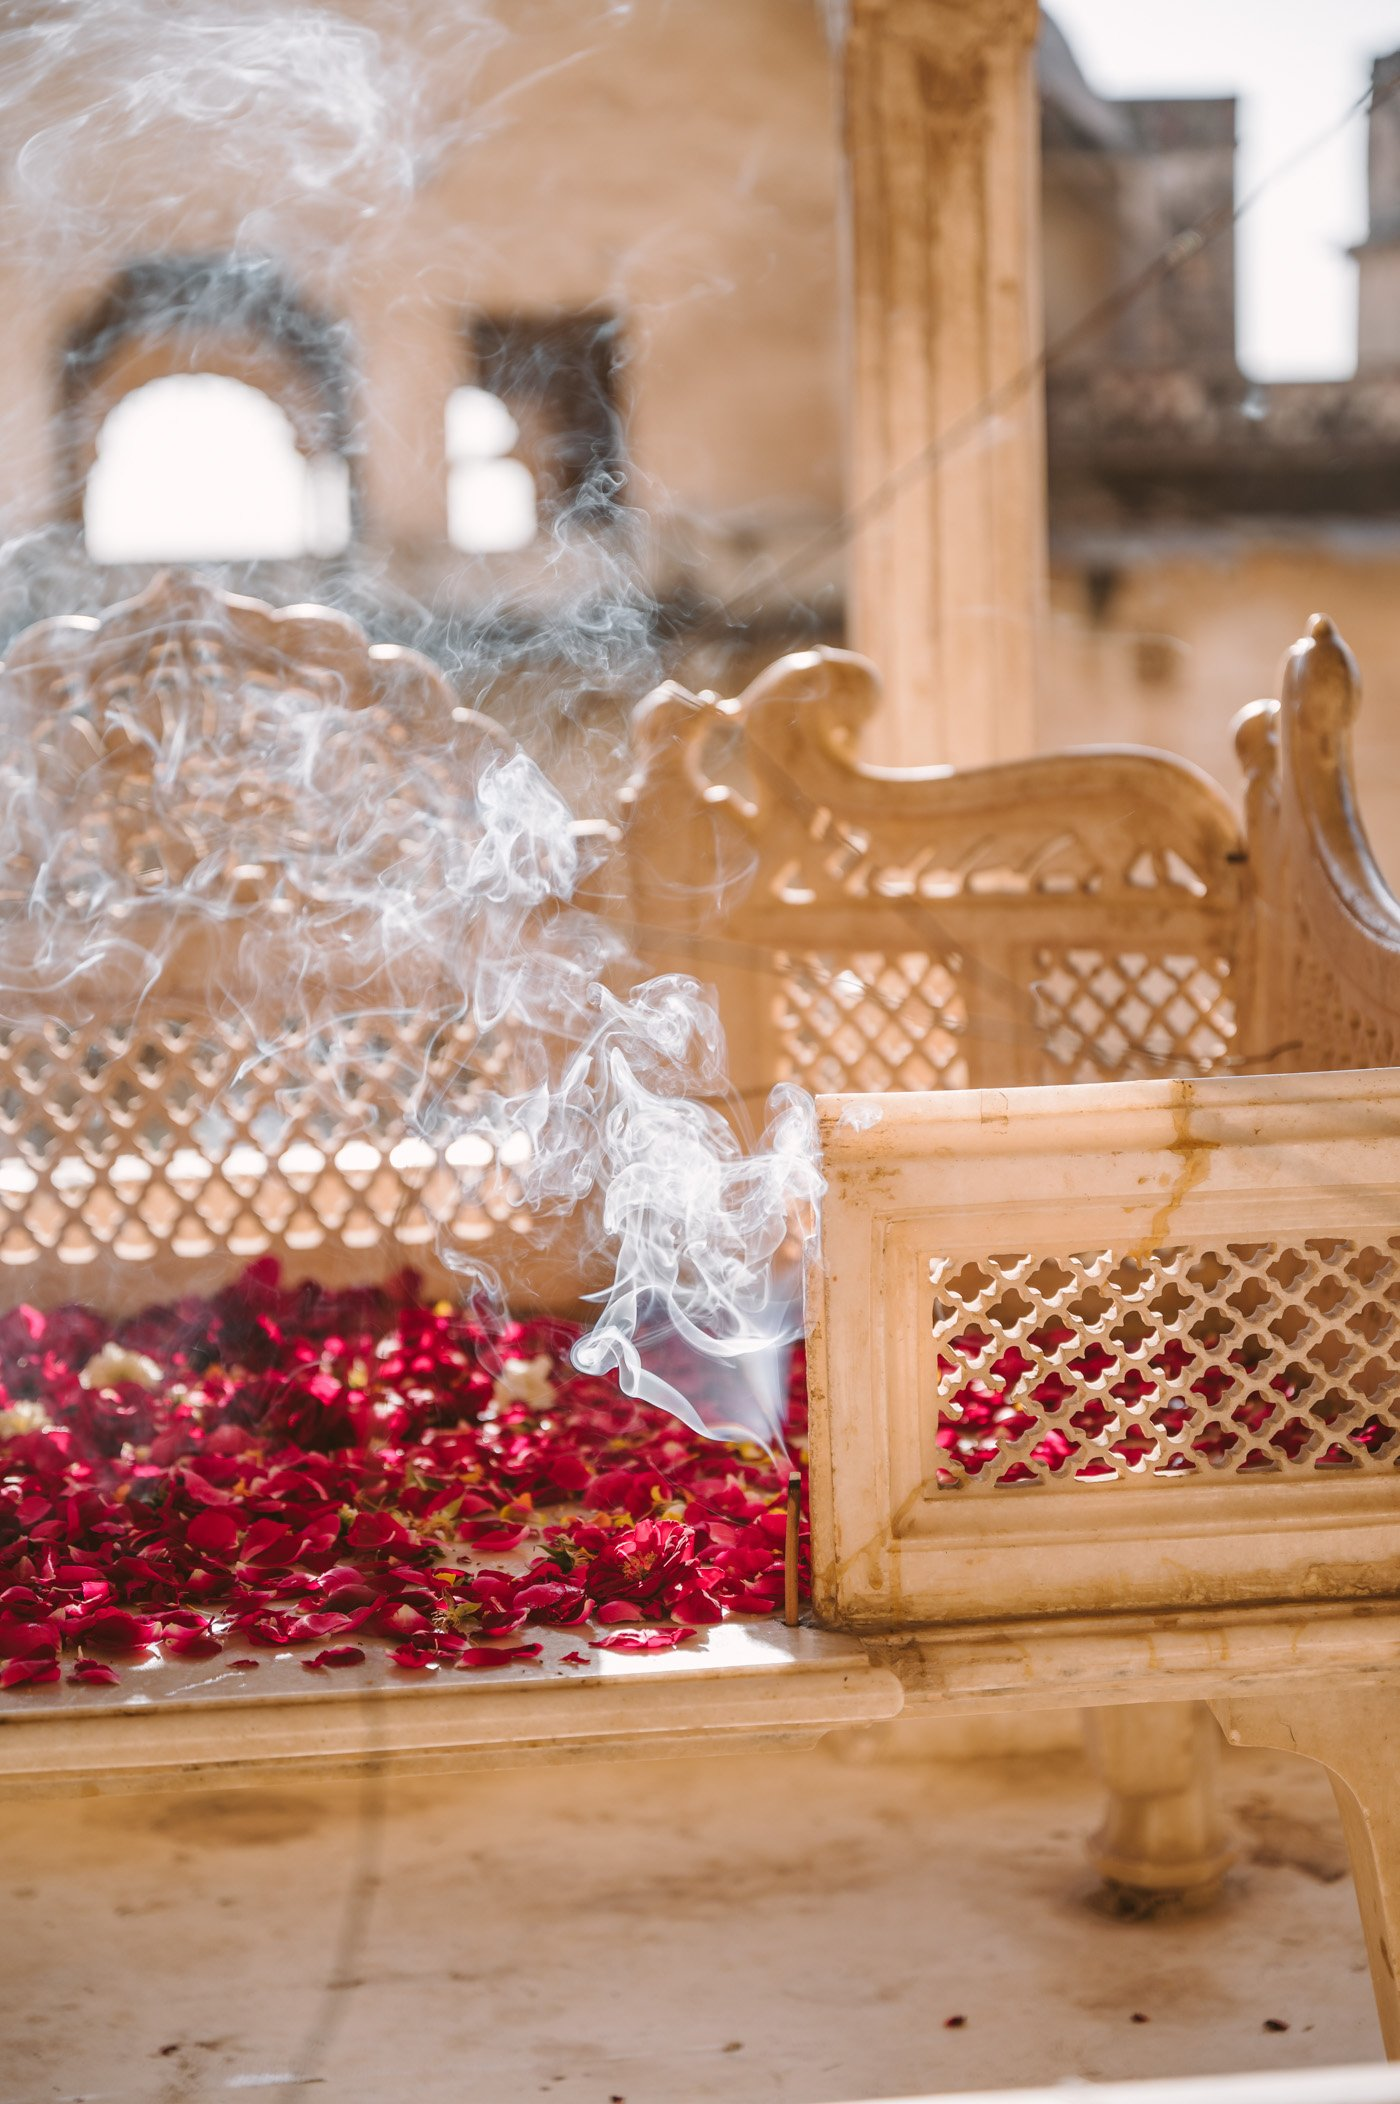 Incense and rose offering in a temple in Rajasthan